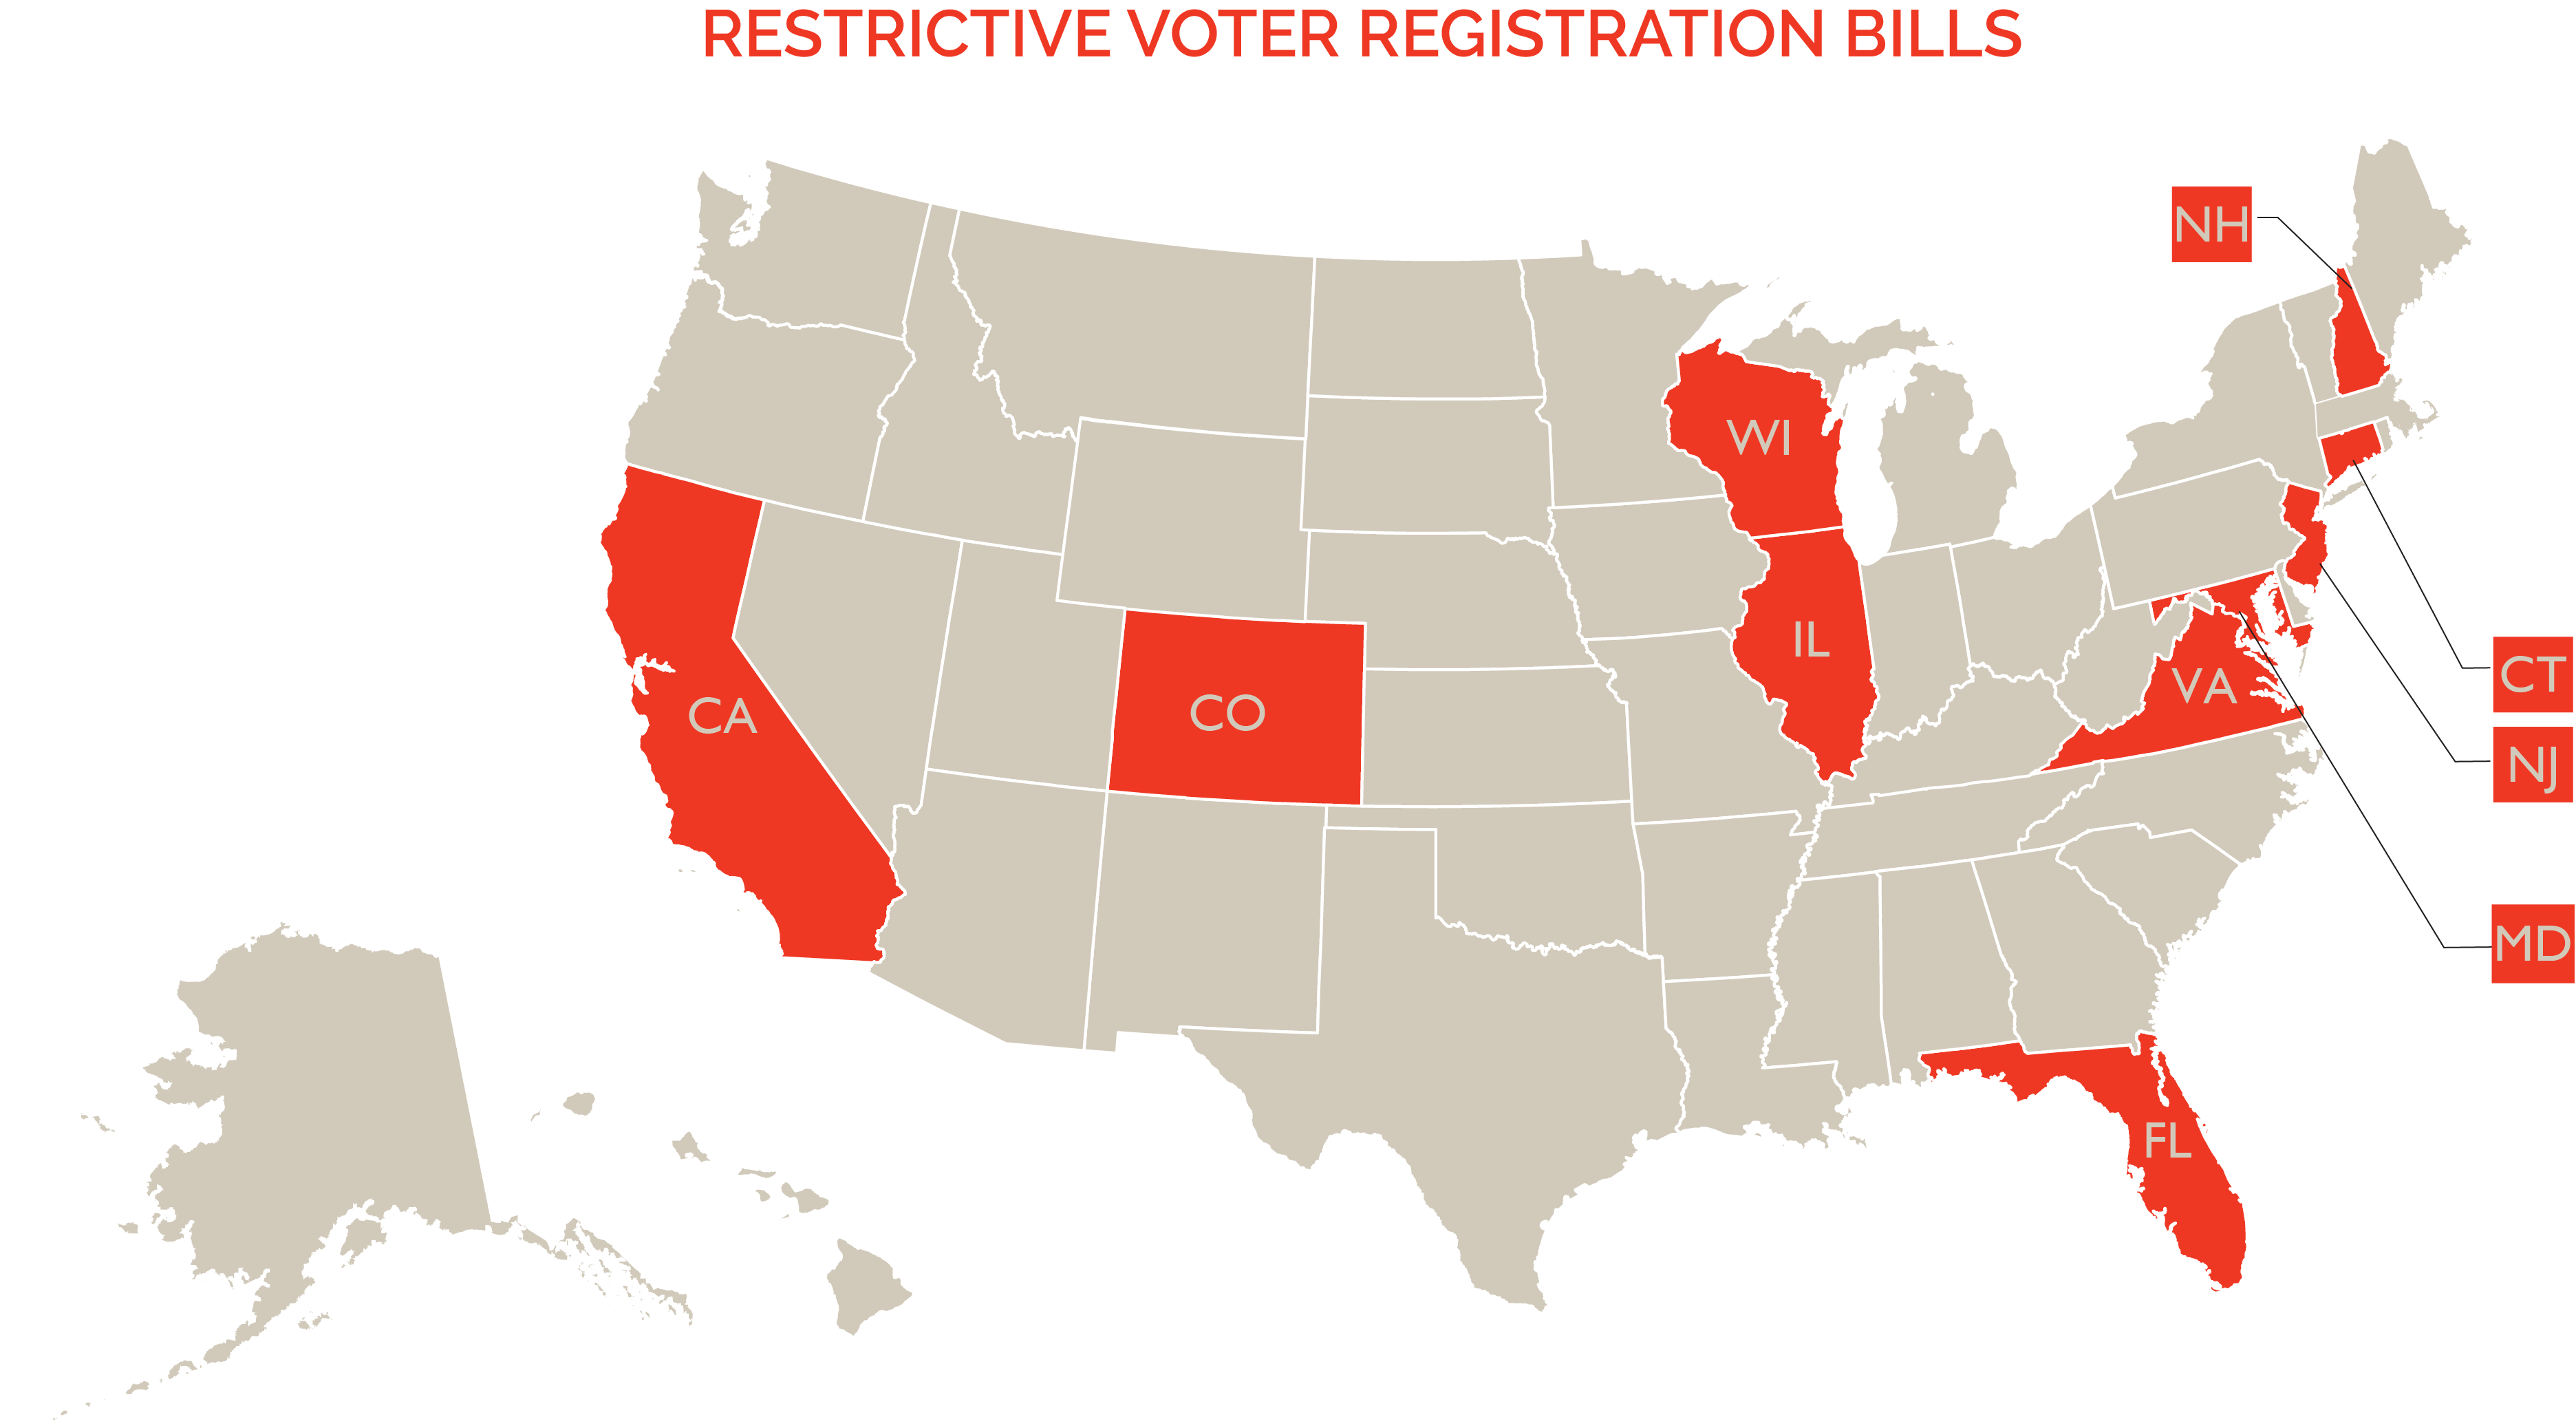 RESTRICTIVE-VR-LEGISLATION-MAP-MAY 2016